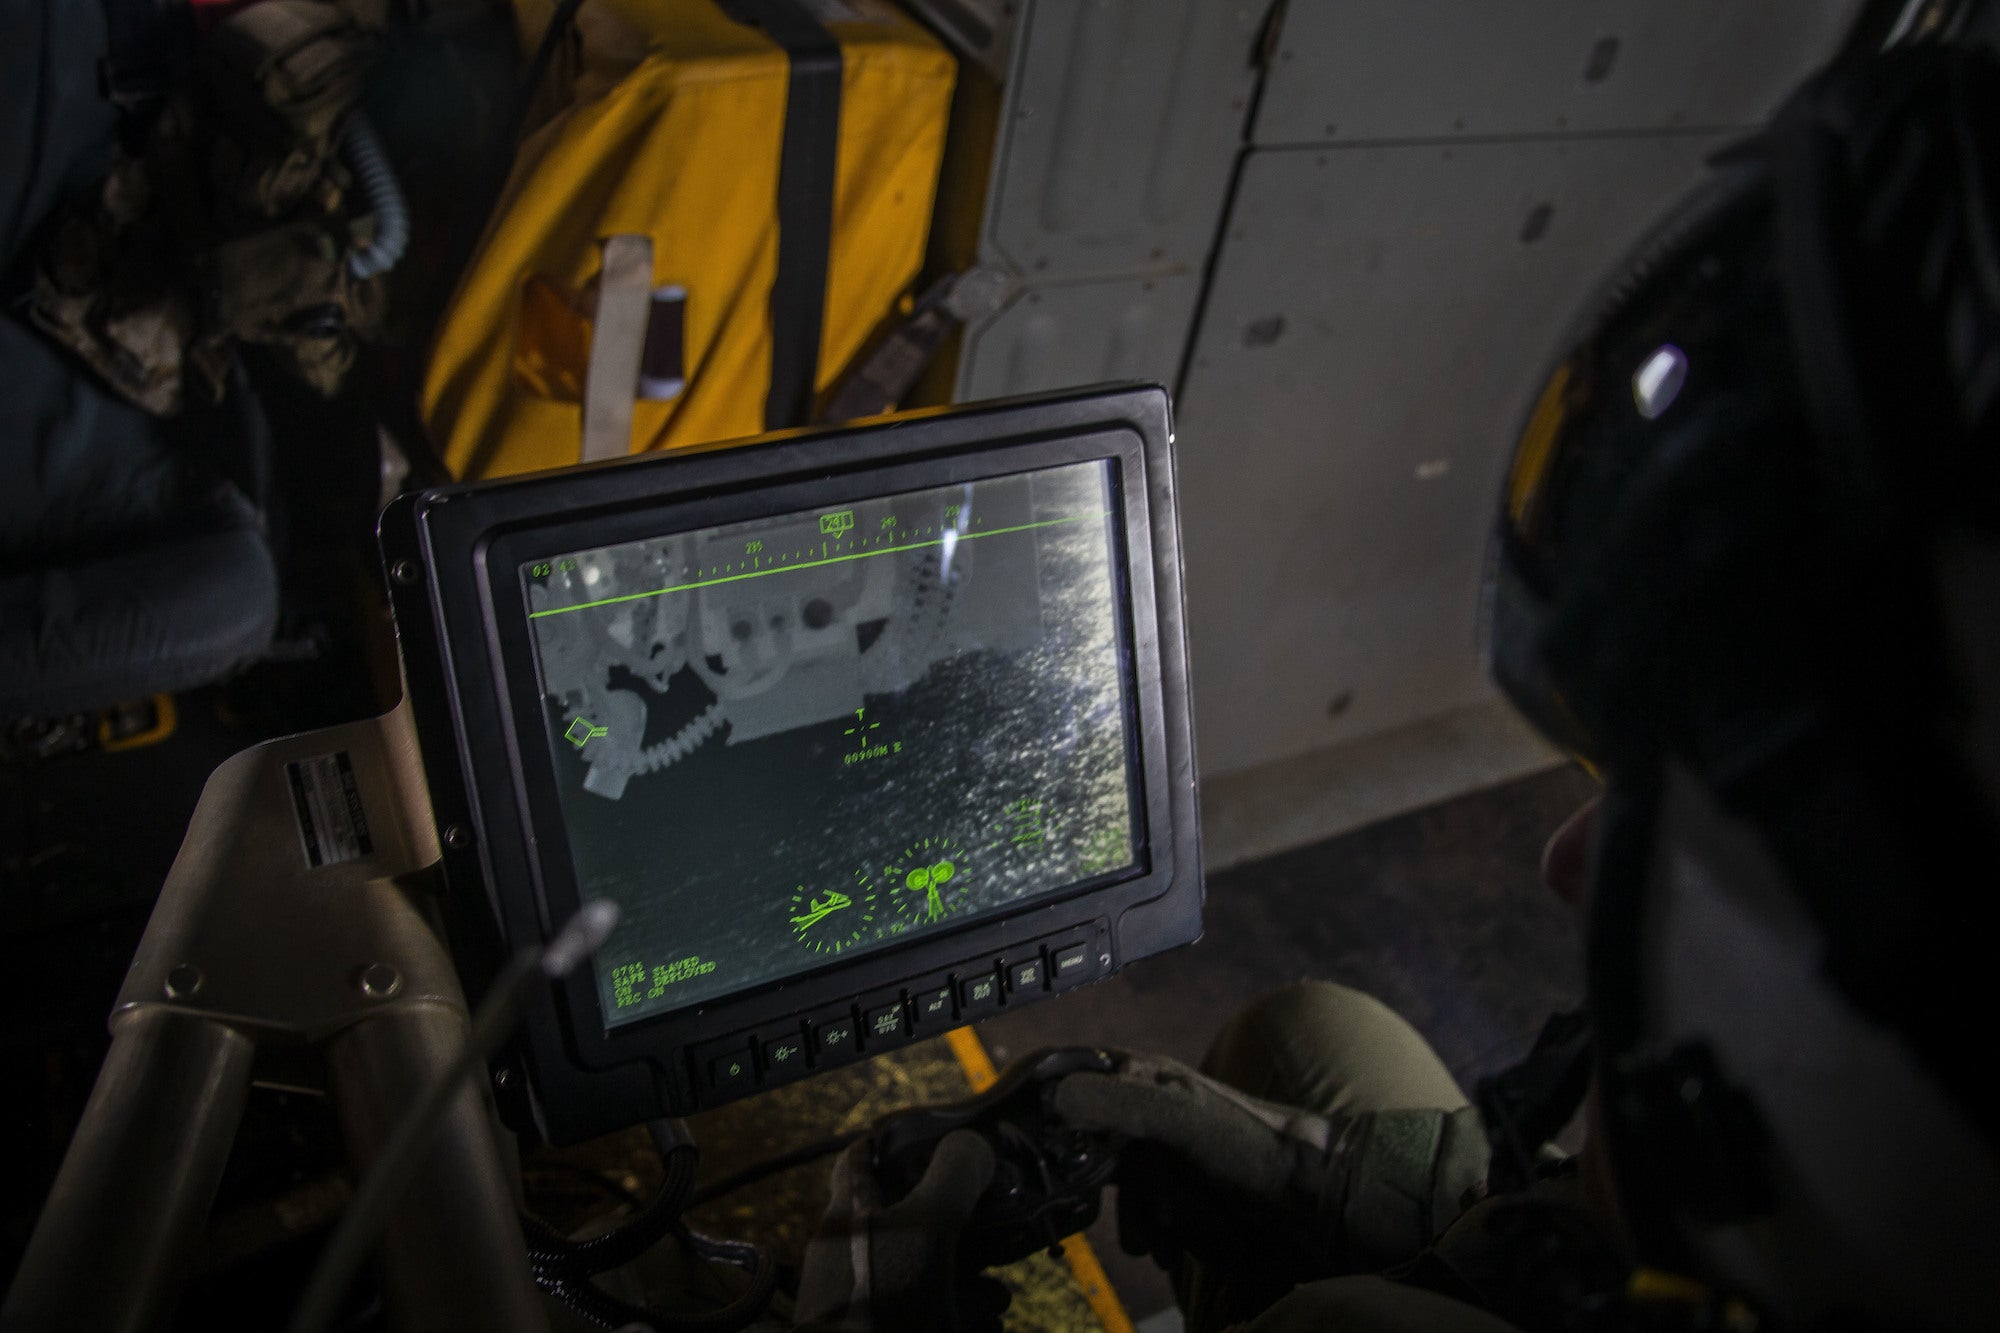 A defensive weapons system station inside a US aircraft.